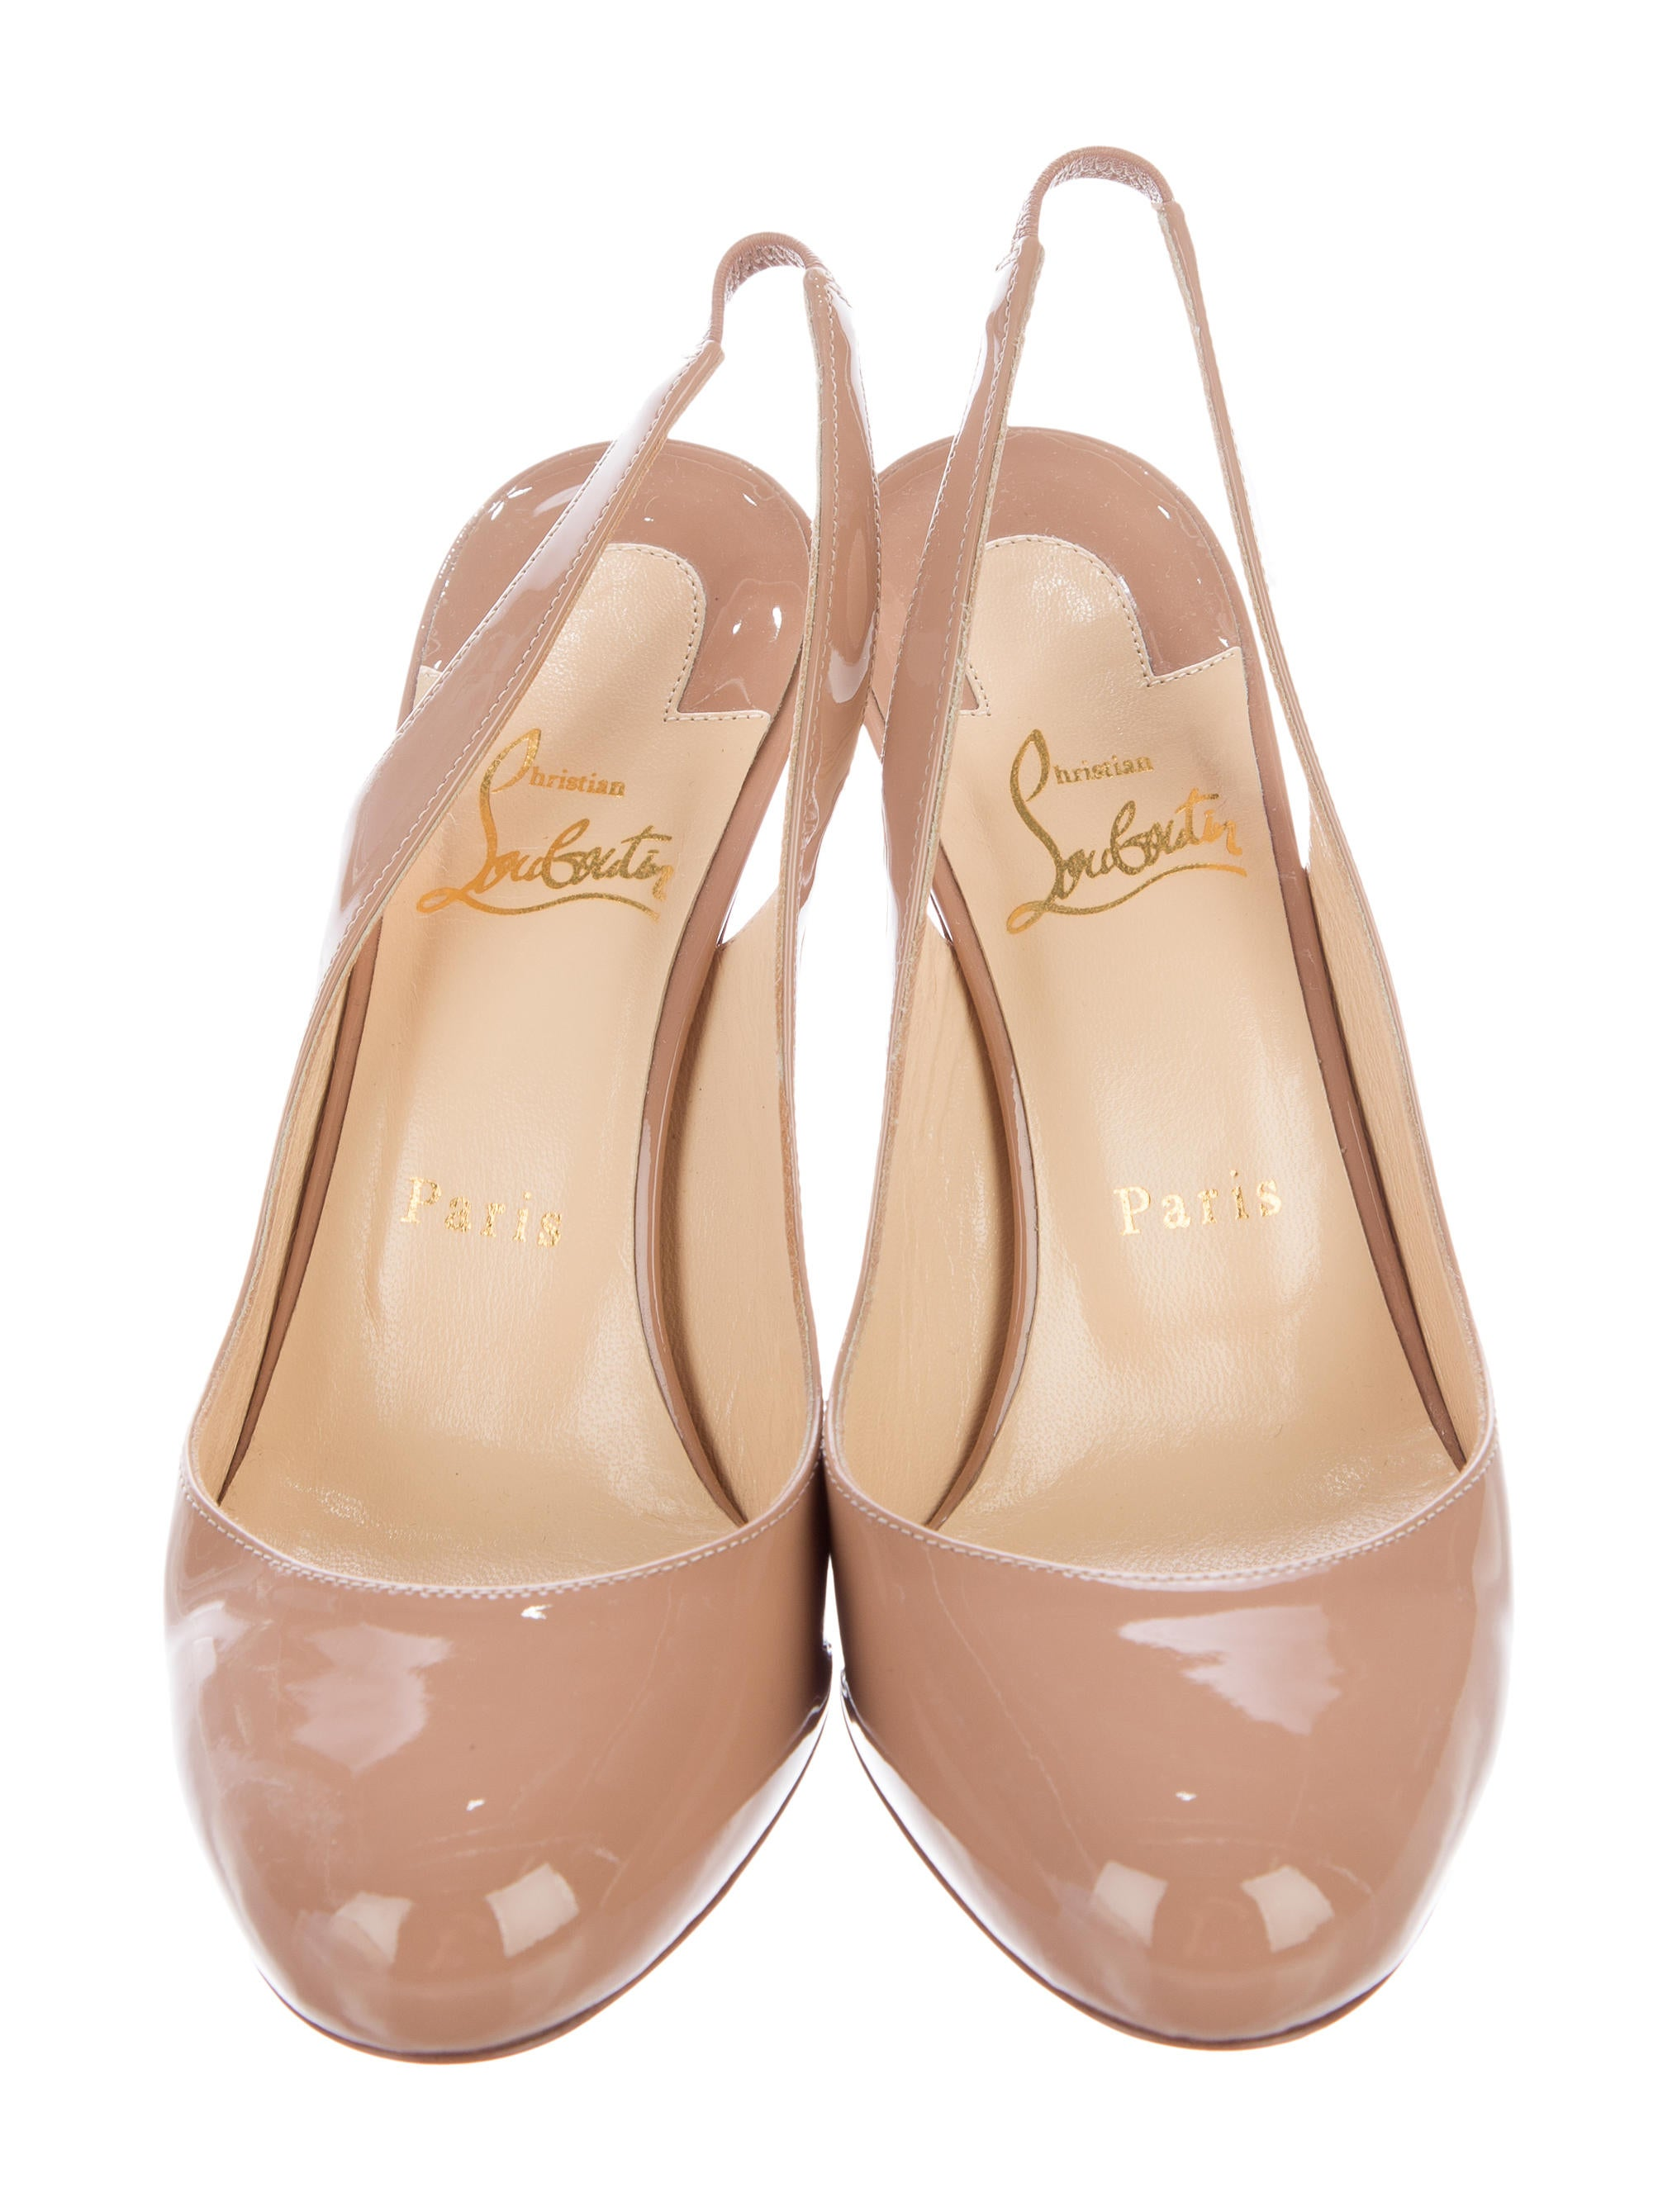 Christian Louboutin Patent Leather Slingback Pumps Shoes